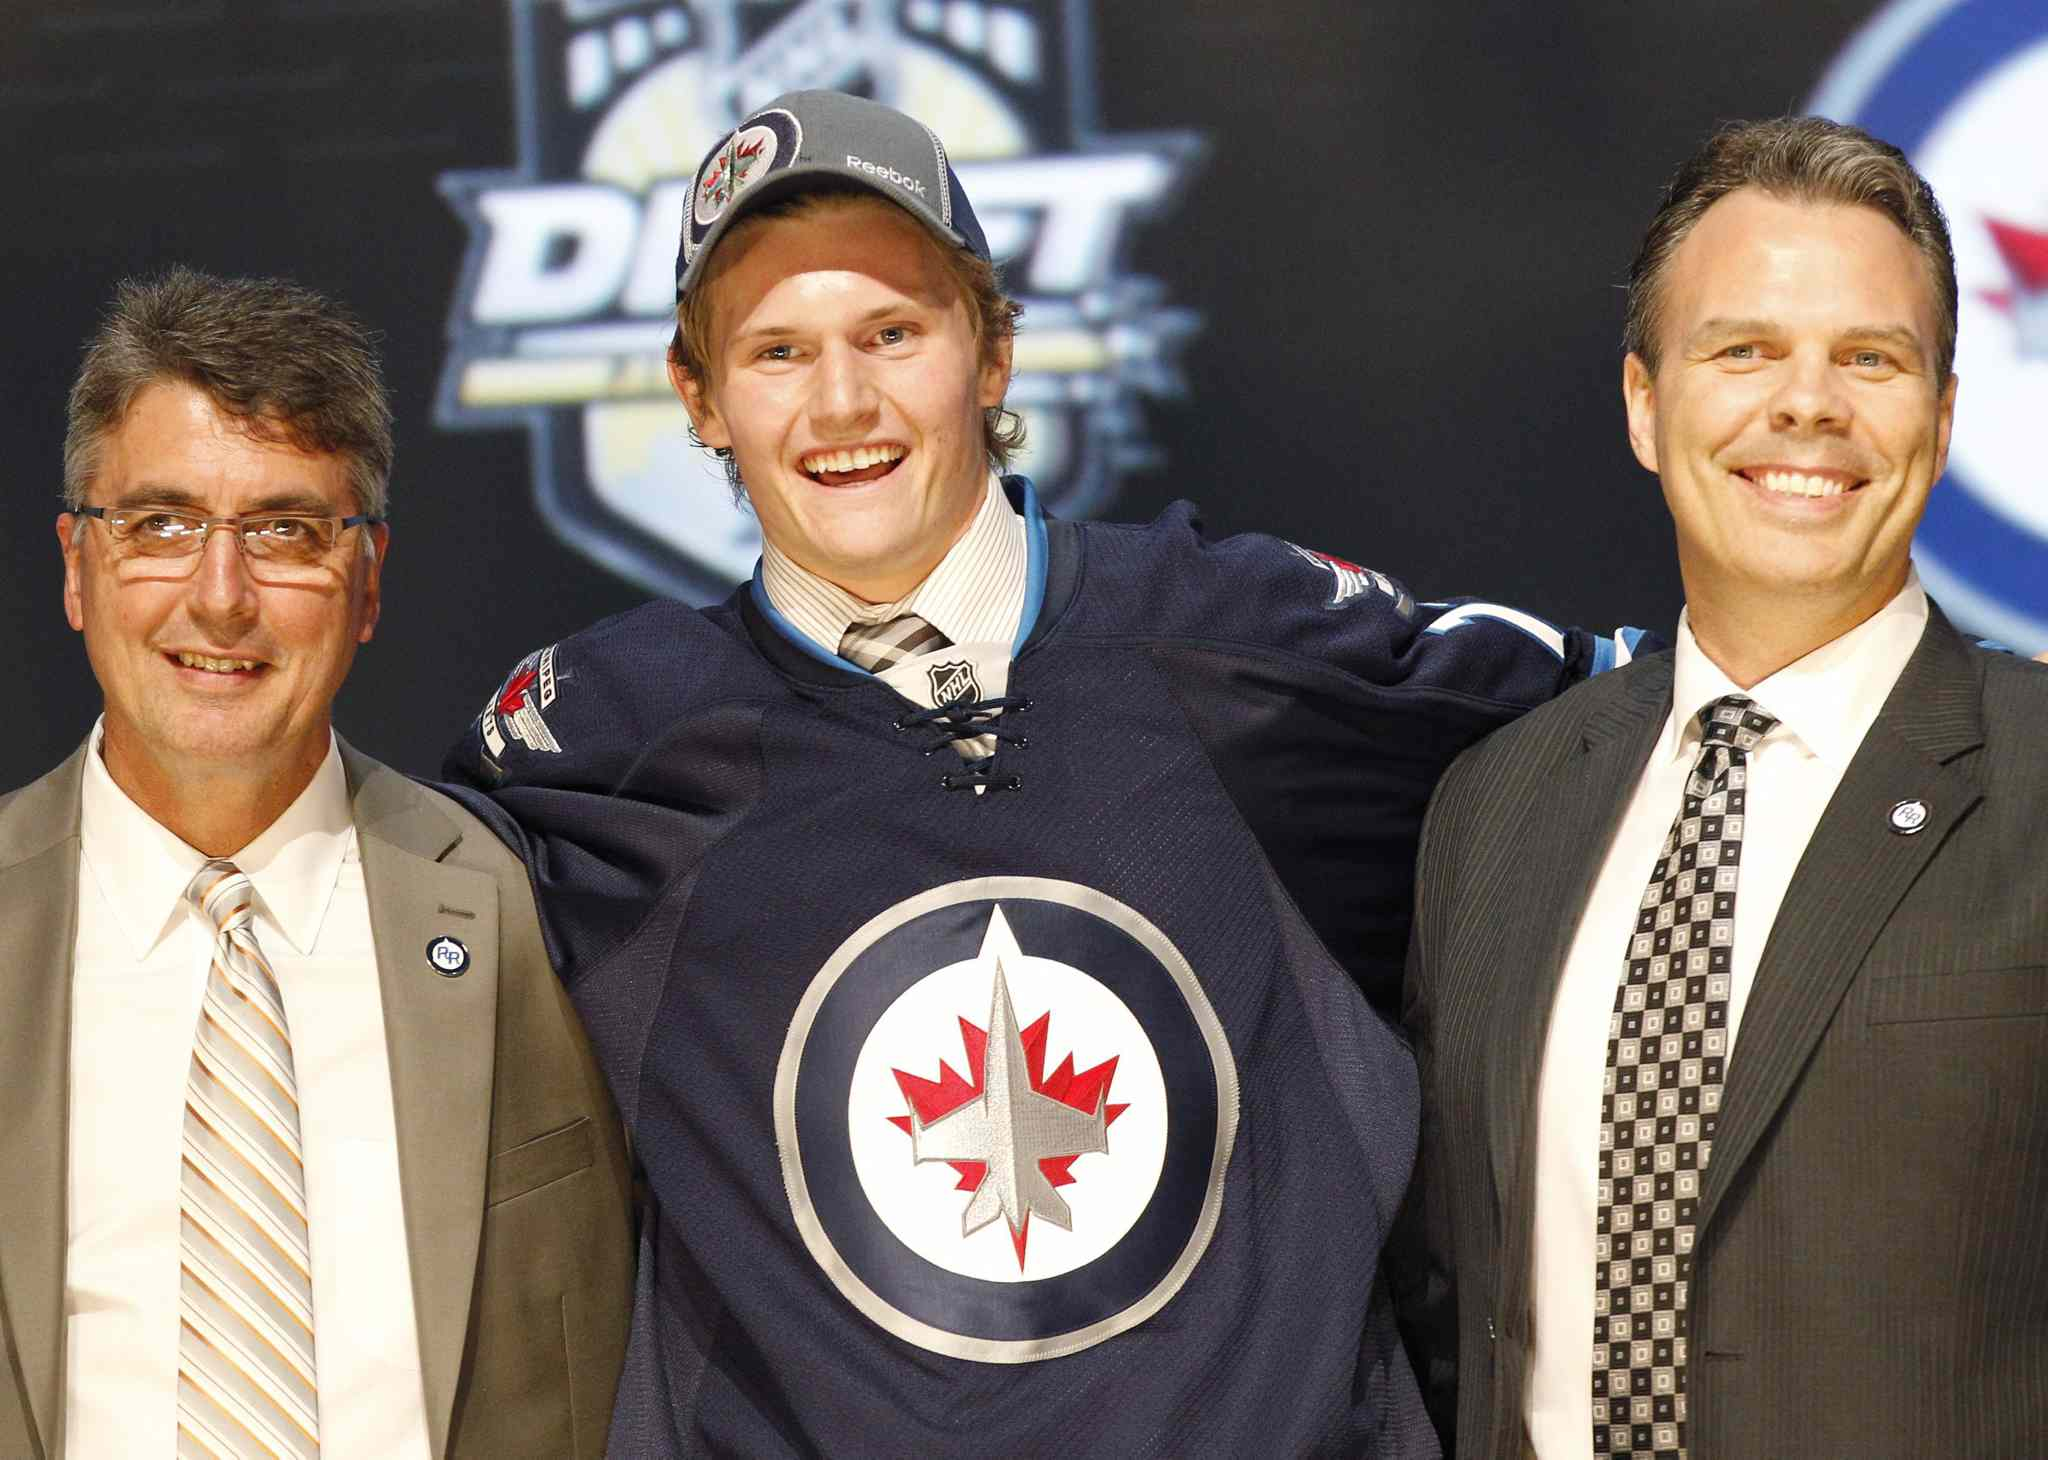 Jacob Trouba, center, a defenseman, stands with officials from the Winnipeg Jets after being chosen ninth overall in the first round of the NHL hockey draft on Friday, June 22, 2012, in Pittsburgh. (AP Photo/Keith Srakocic)